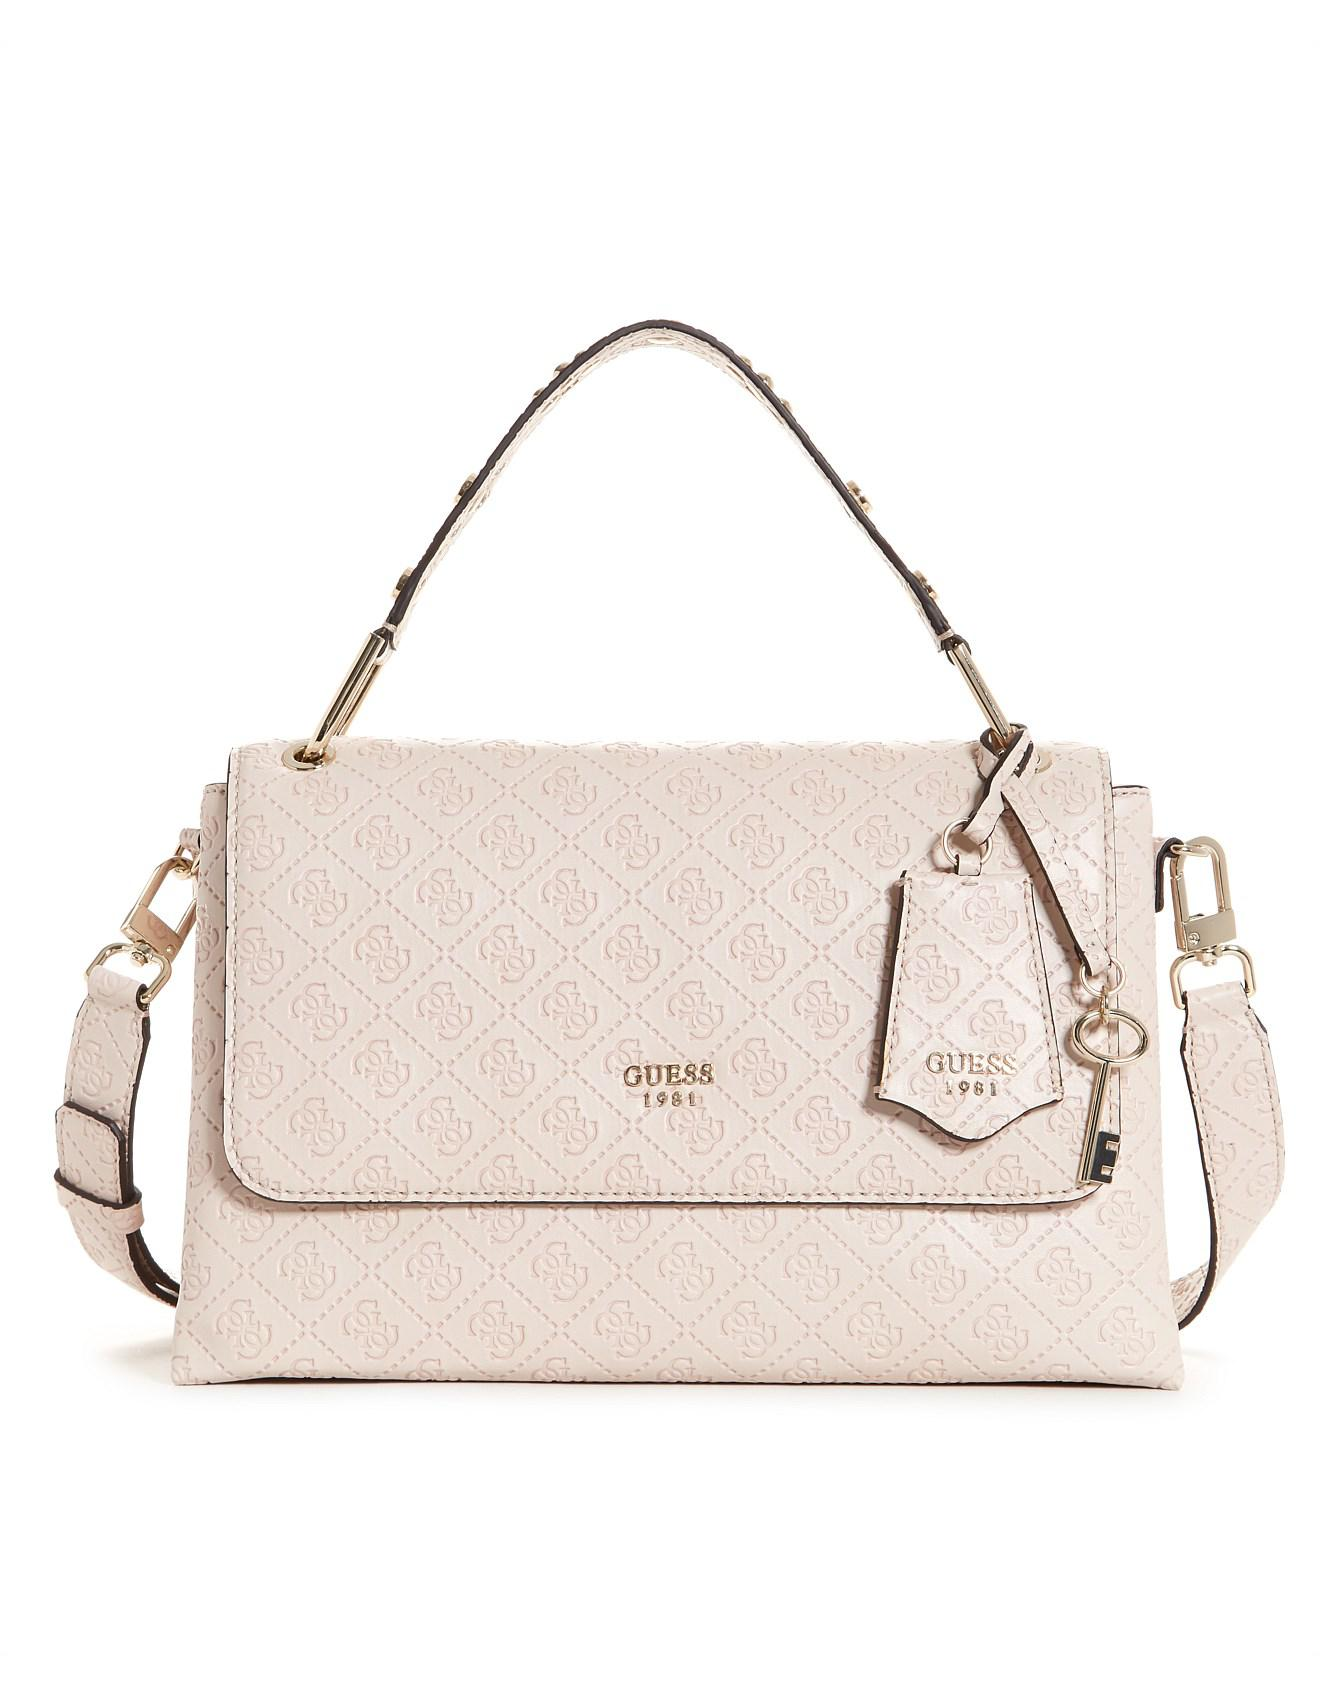 53d846b7313 Guess - Natural Coast To Coast Top Handle Bag - Lyst. View fullscreen